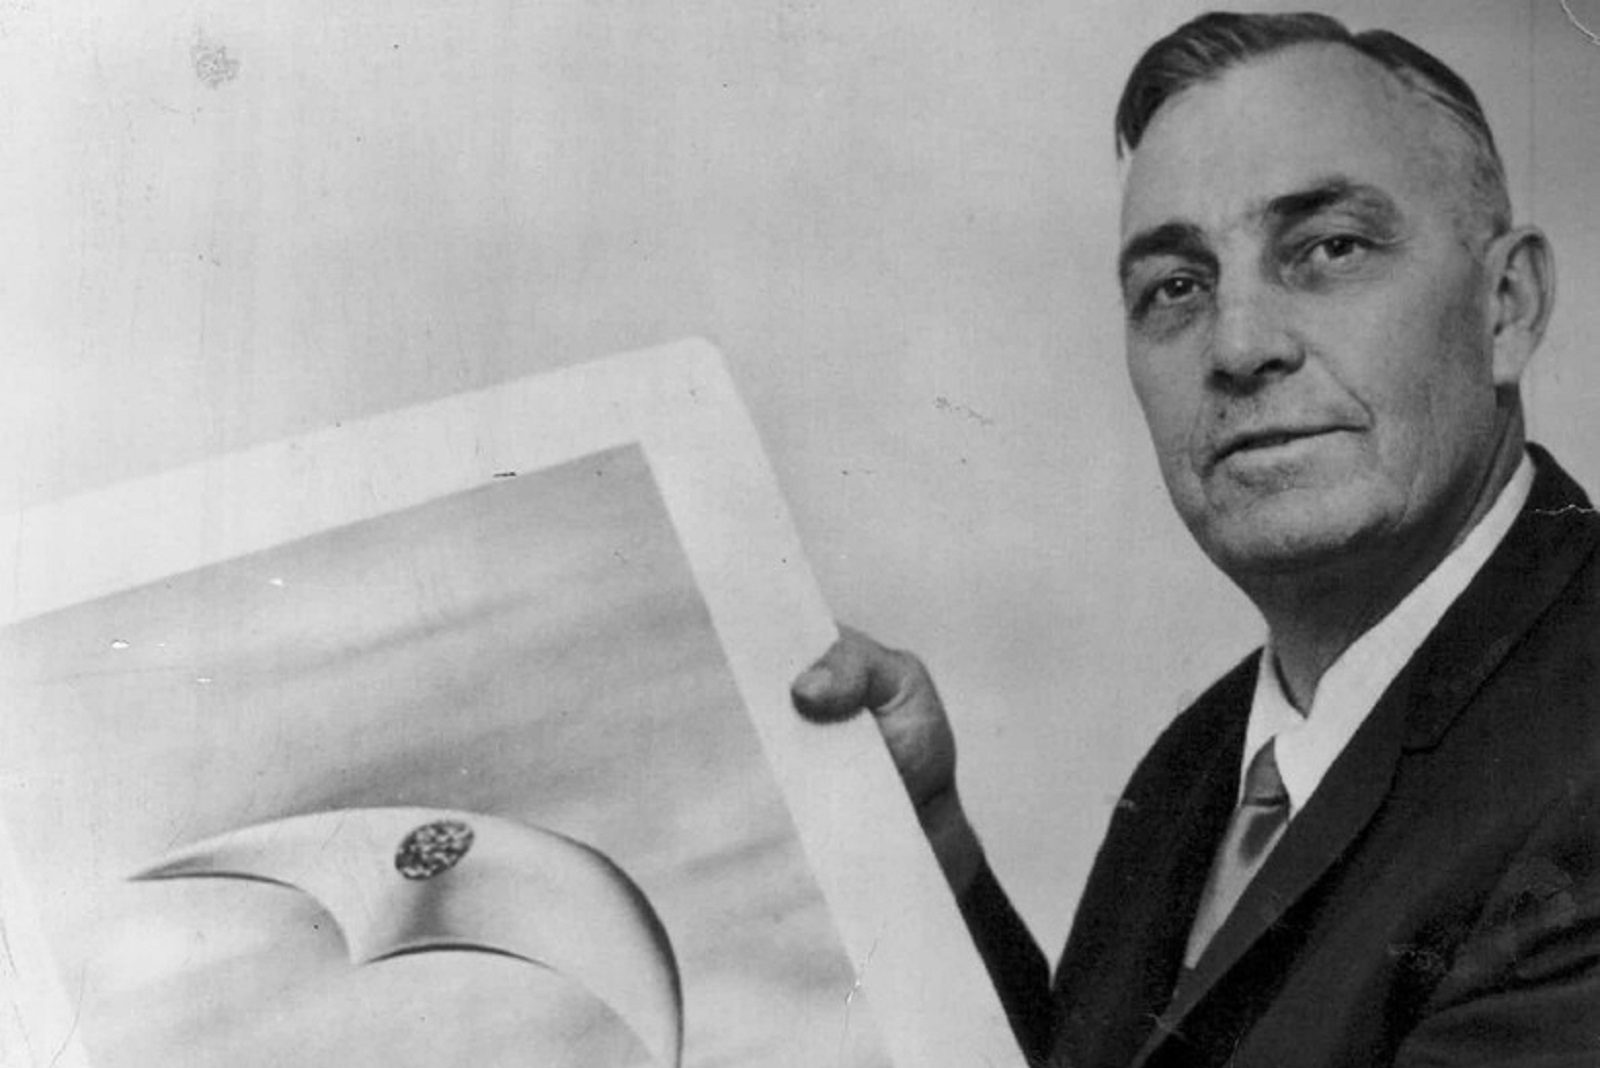 kenneth arnold-ovnis-ufos-ufologia-ovni-monte rainier-24 de junio de 1947-washington